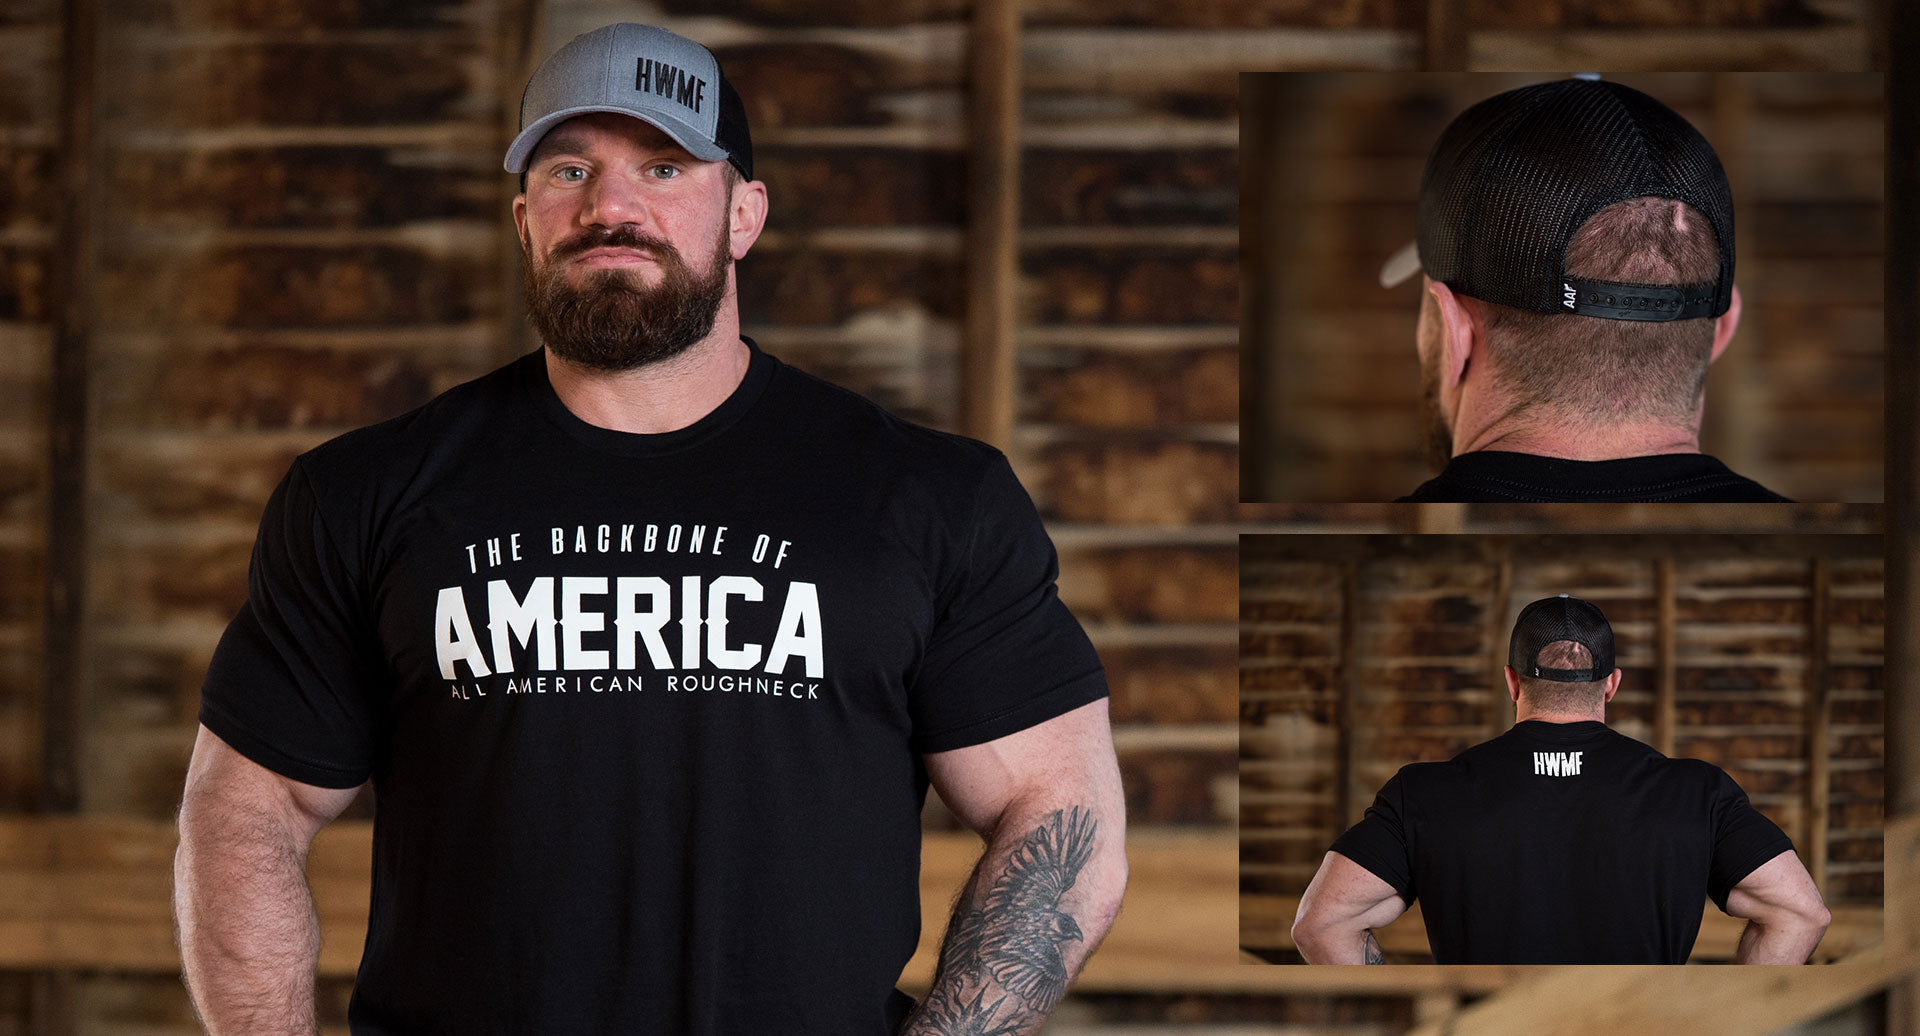 Backbone of America Tee